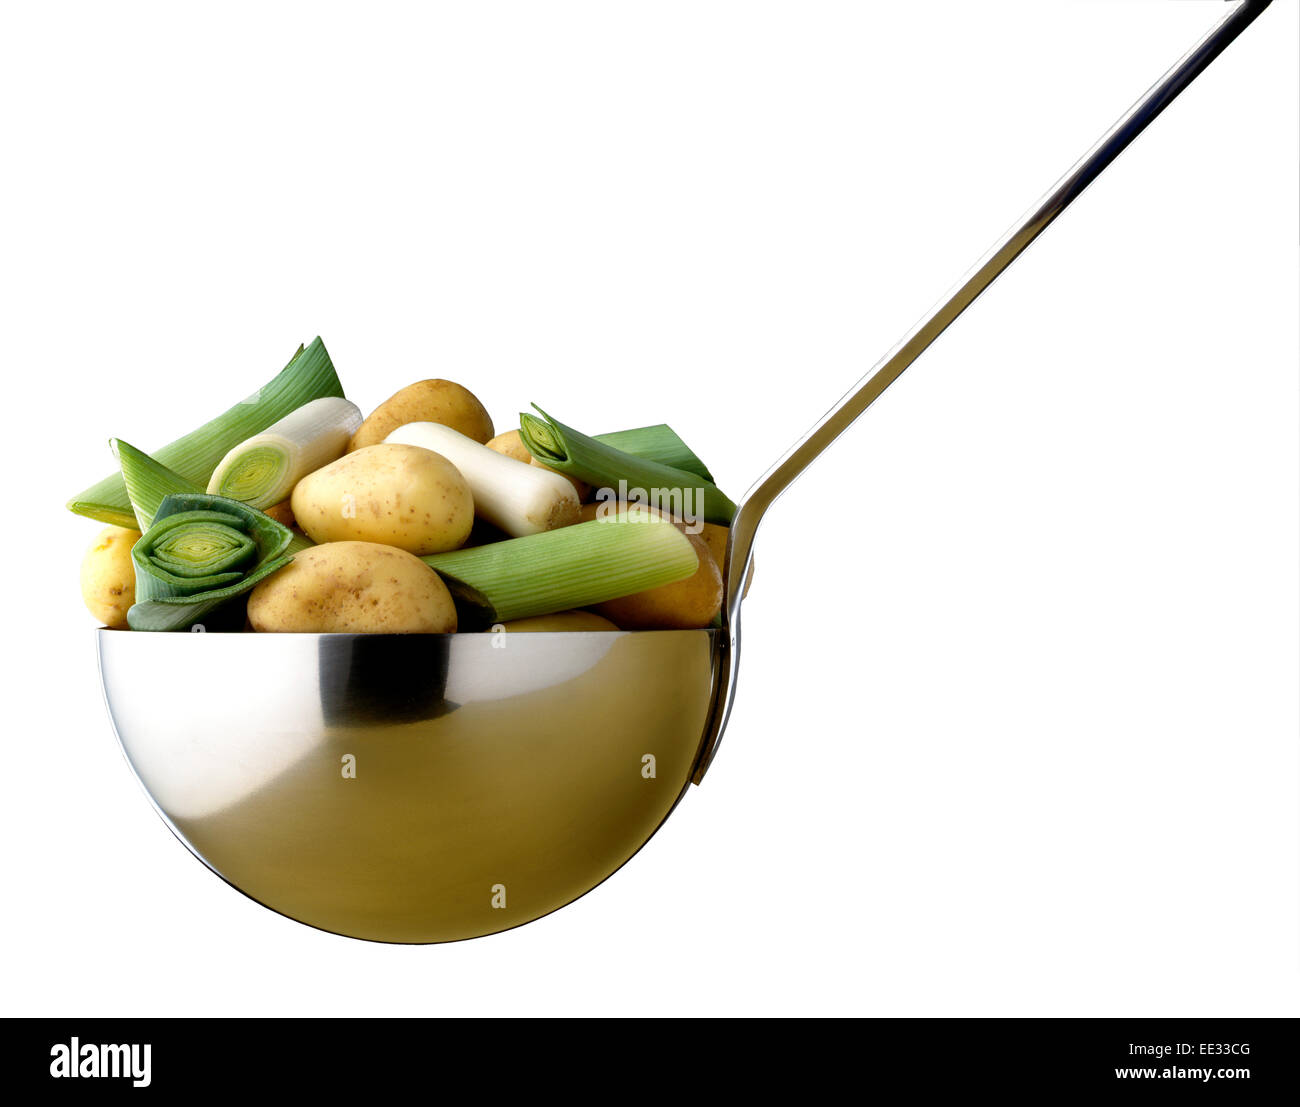 leek and potato soup ingredients in large ladle - Stock Image